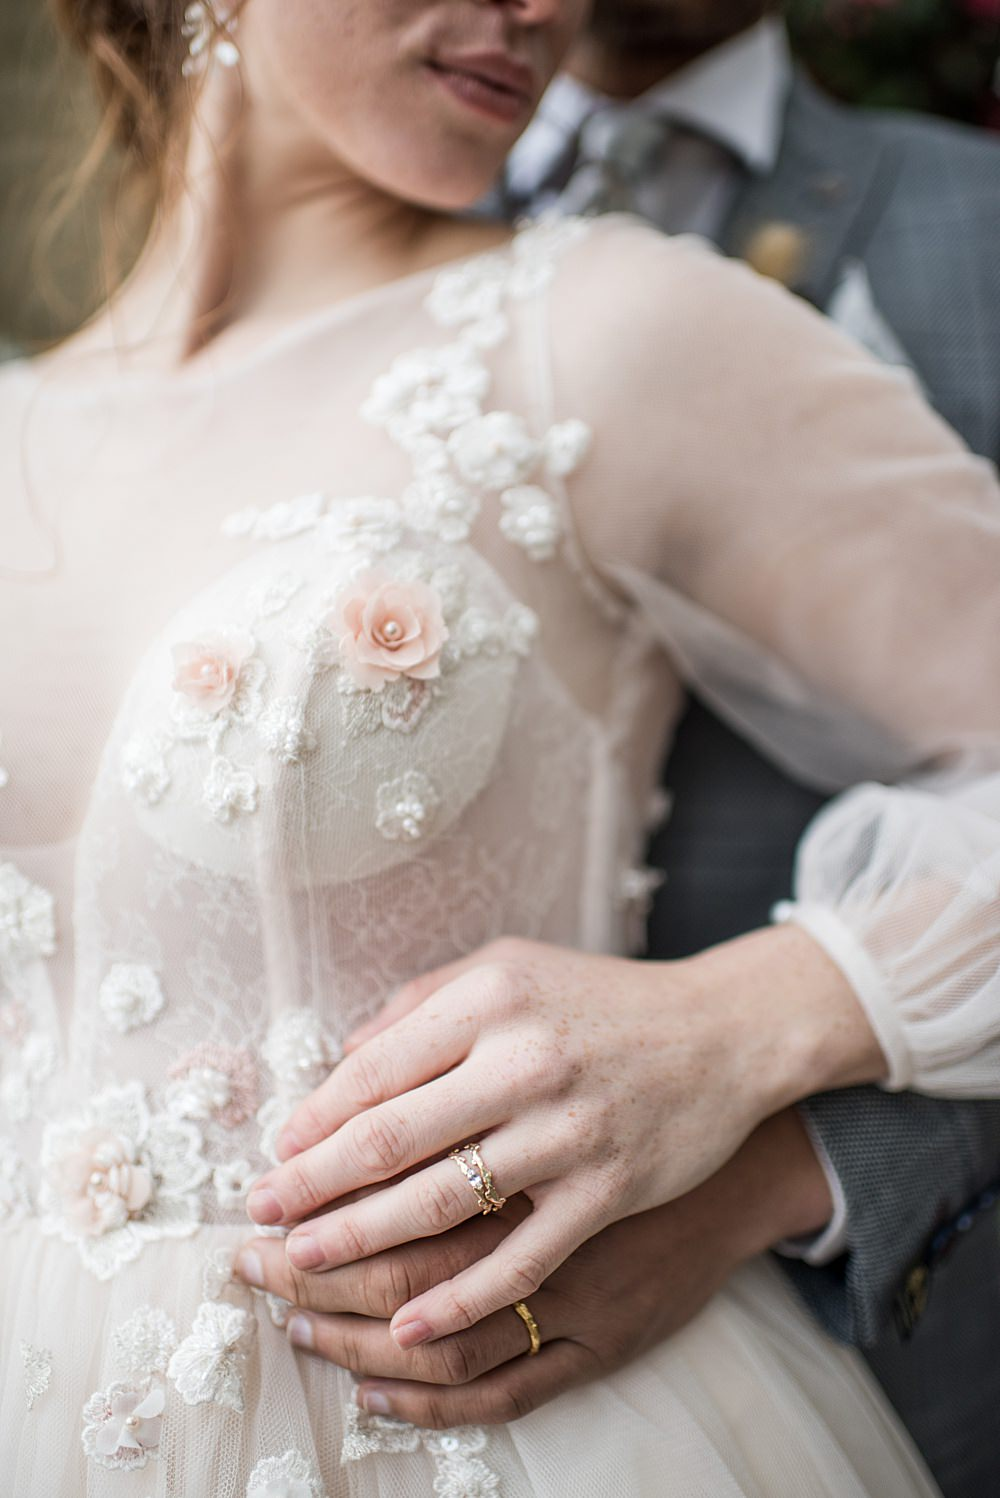 Dress Gown Bride Bridal Floral Tulle Sleeves Skirt Peach Gold Wedding Ideas Jane Beadnell Photography